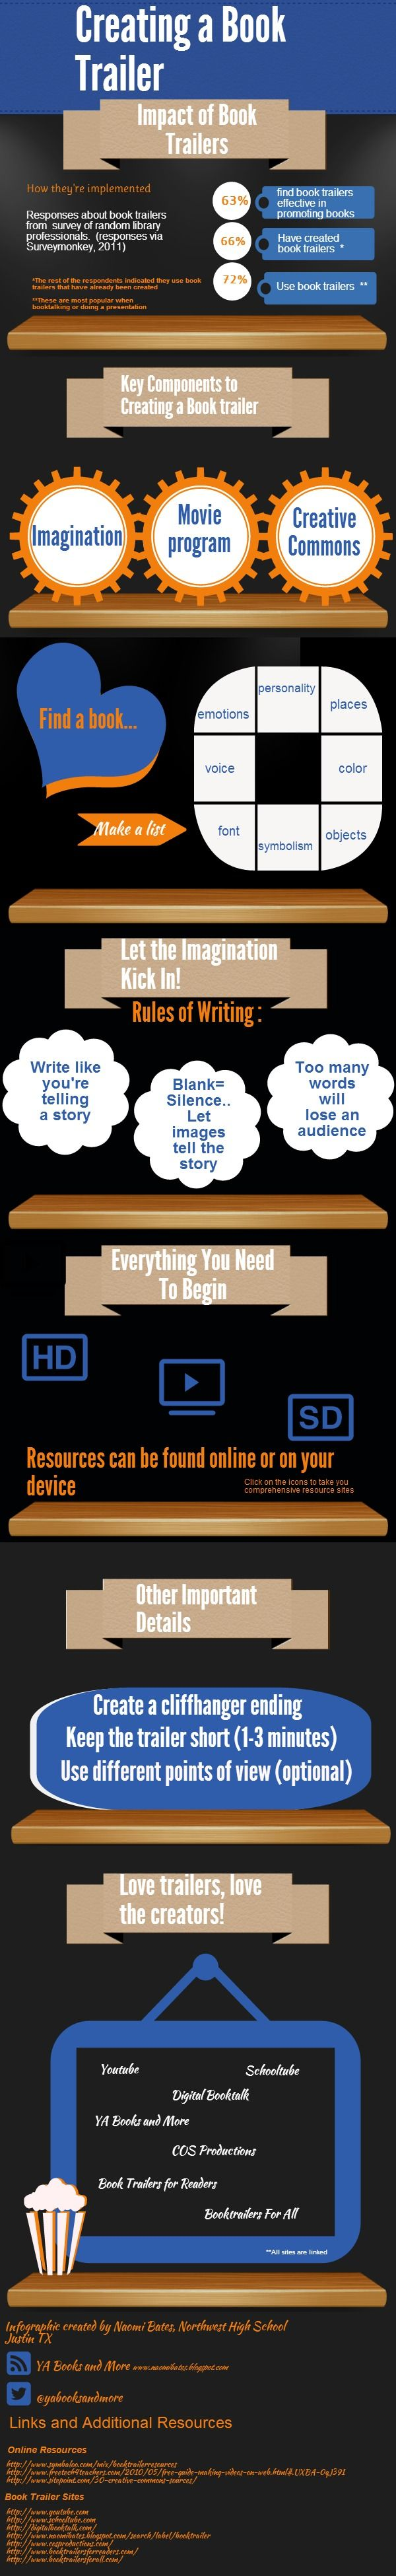 How To Make A Book Trailer On Imovie ~ Images about high school library bulletin board